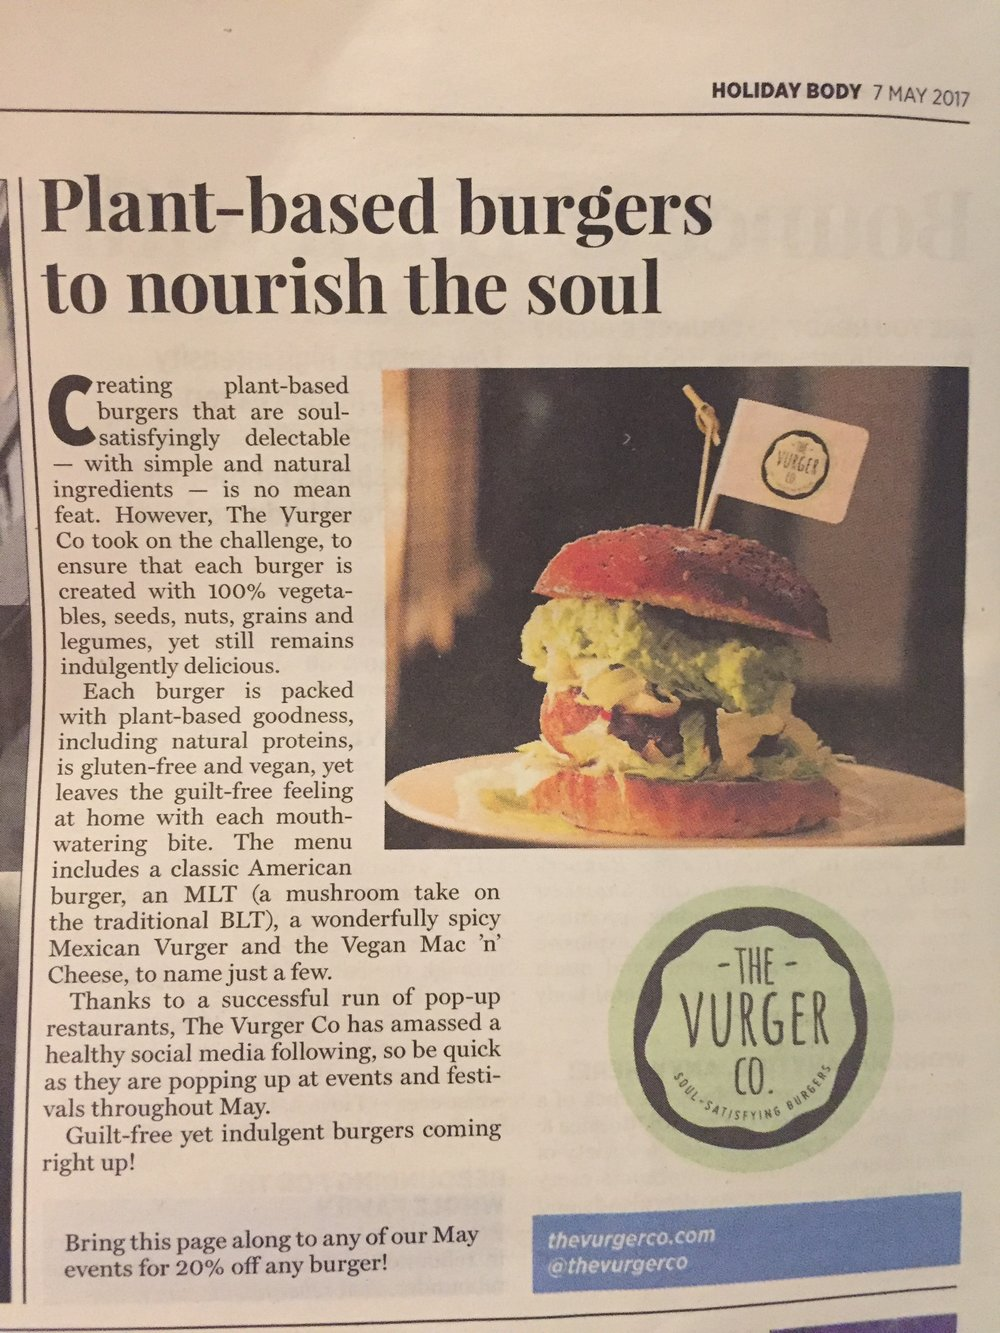 The Mail on Sunday - Featured in the Mail on Sunday 7th May 2017 in their Holiday Body supplement